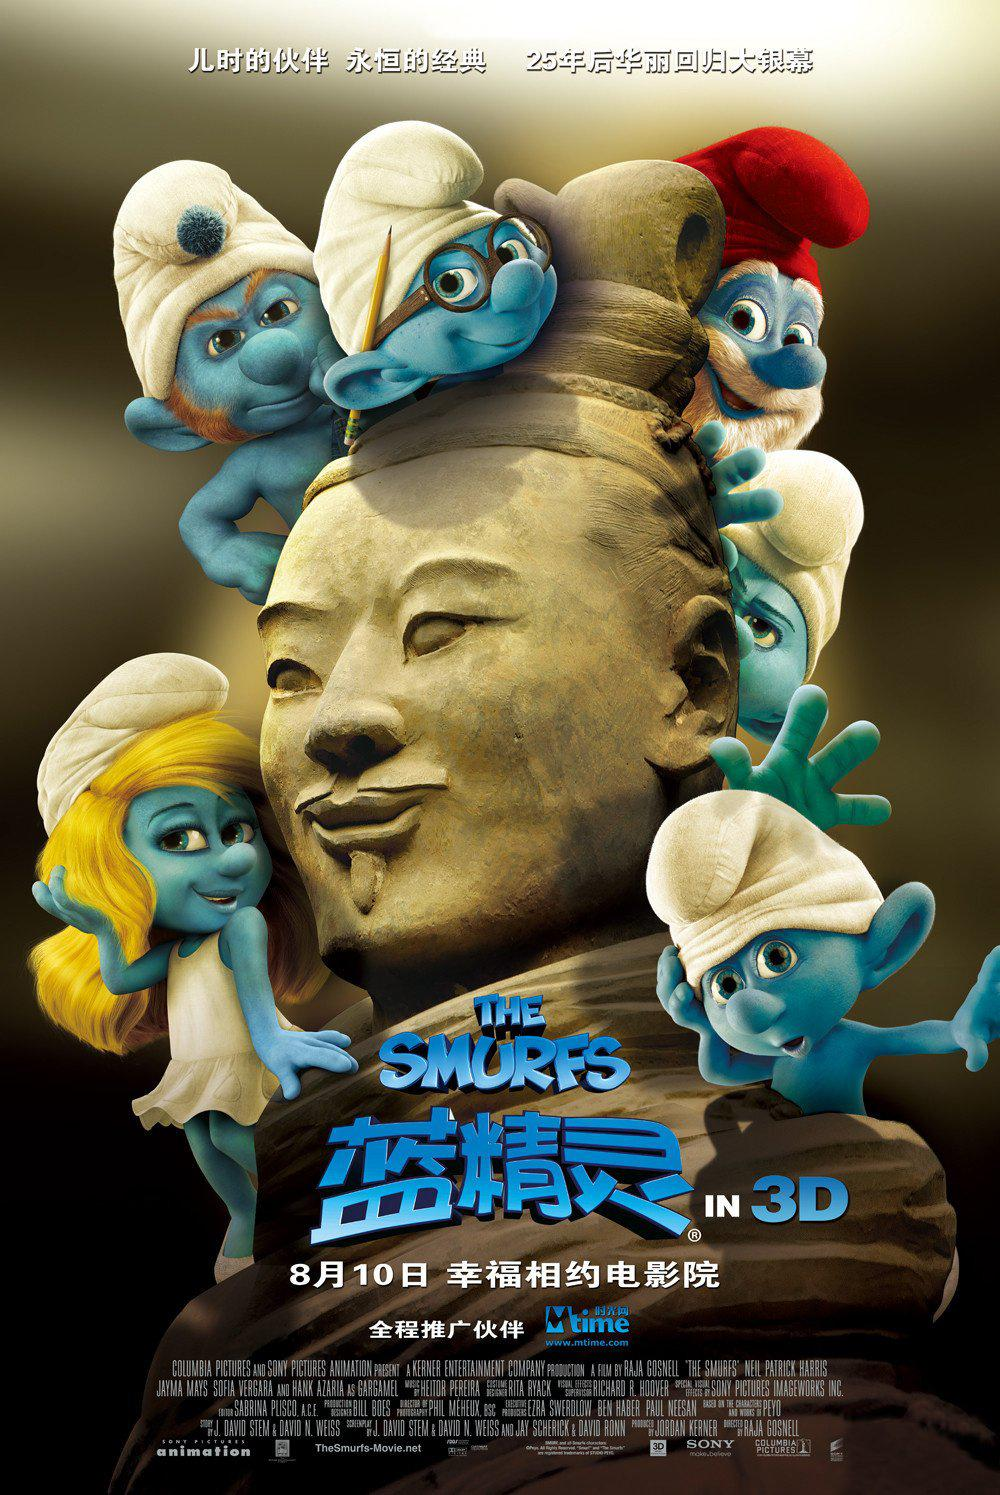 Film I Puffi in 3D - Movie Smurfs in 3D - poster - China